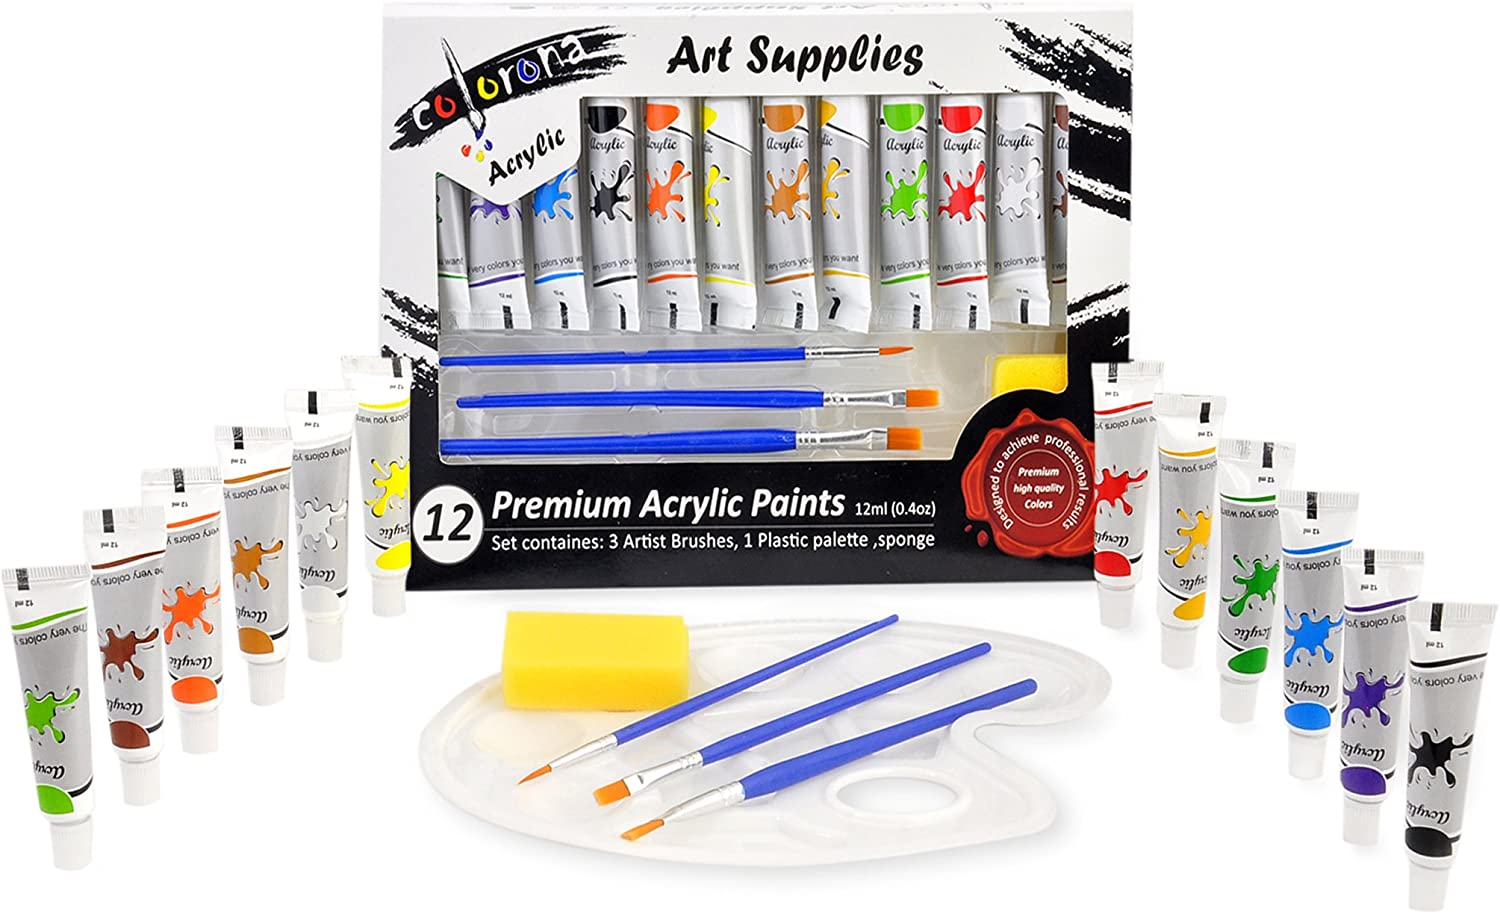 Colorona Acrylic Paint Set 12 Colors with Palette, 3 Paint Brushes & Sponge. Perfect for Canvas, Rocks, Ceramic and Crafts. Non Toxic Vibrant Colors With Rich Quality Pigments for ULTIMATE PERFORMANCE